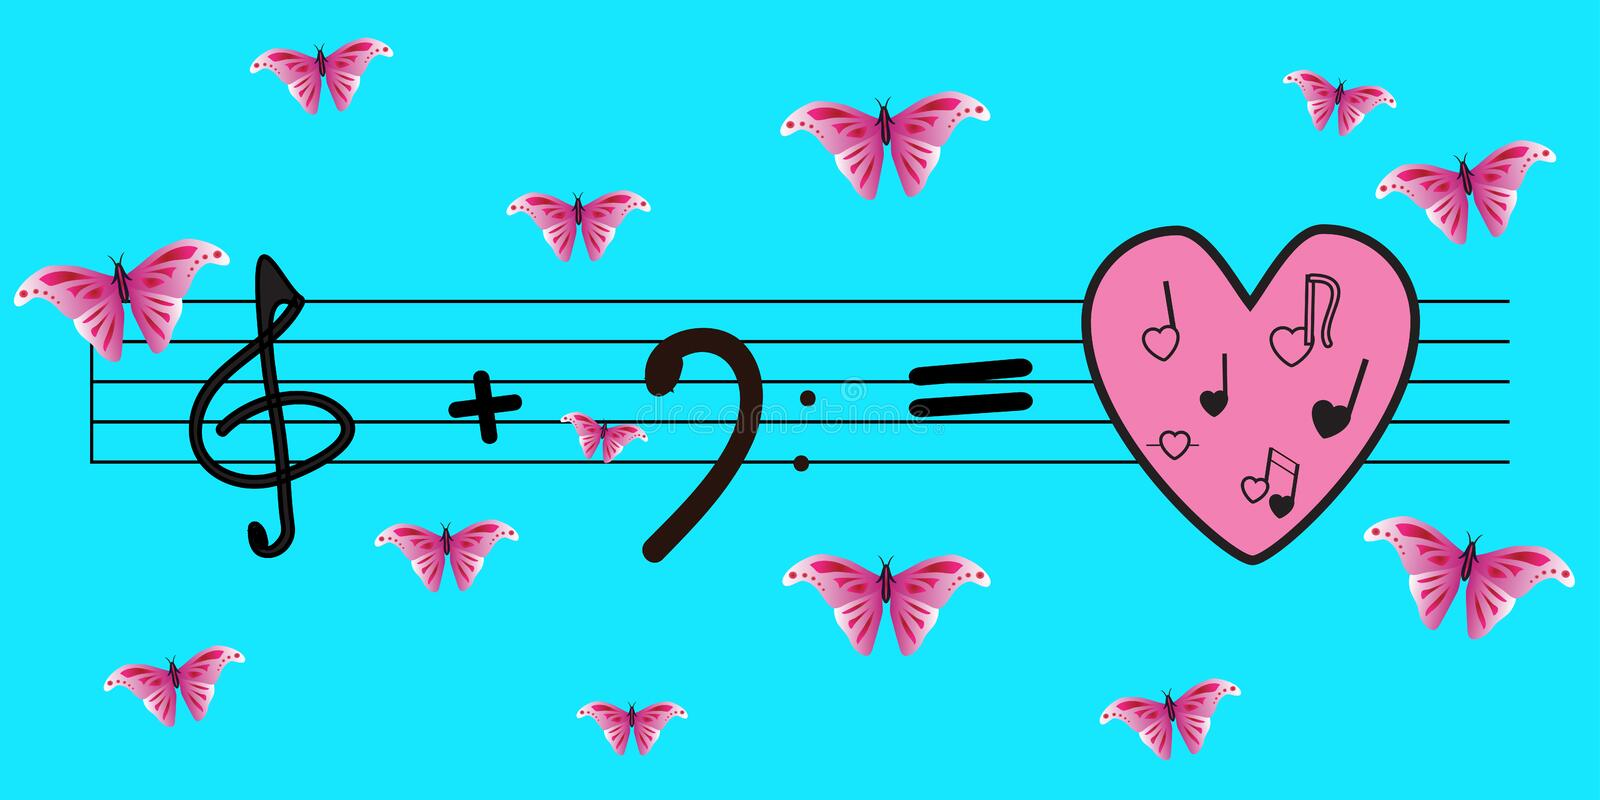 Vector: treble clef plus bass key is equal to love and music. Bright blue background and pink butterflies. Love, music, spring stock illustration